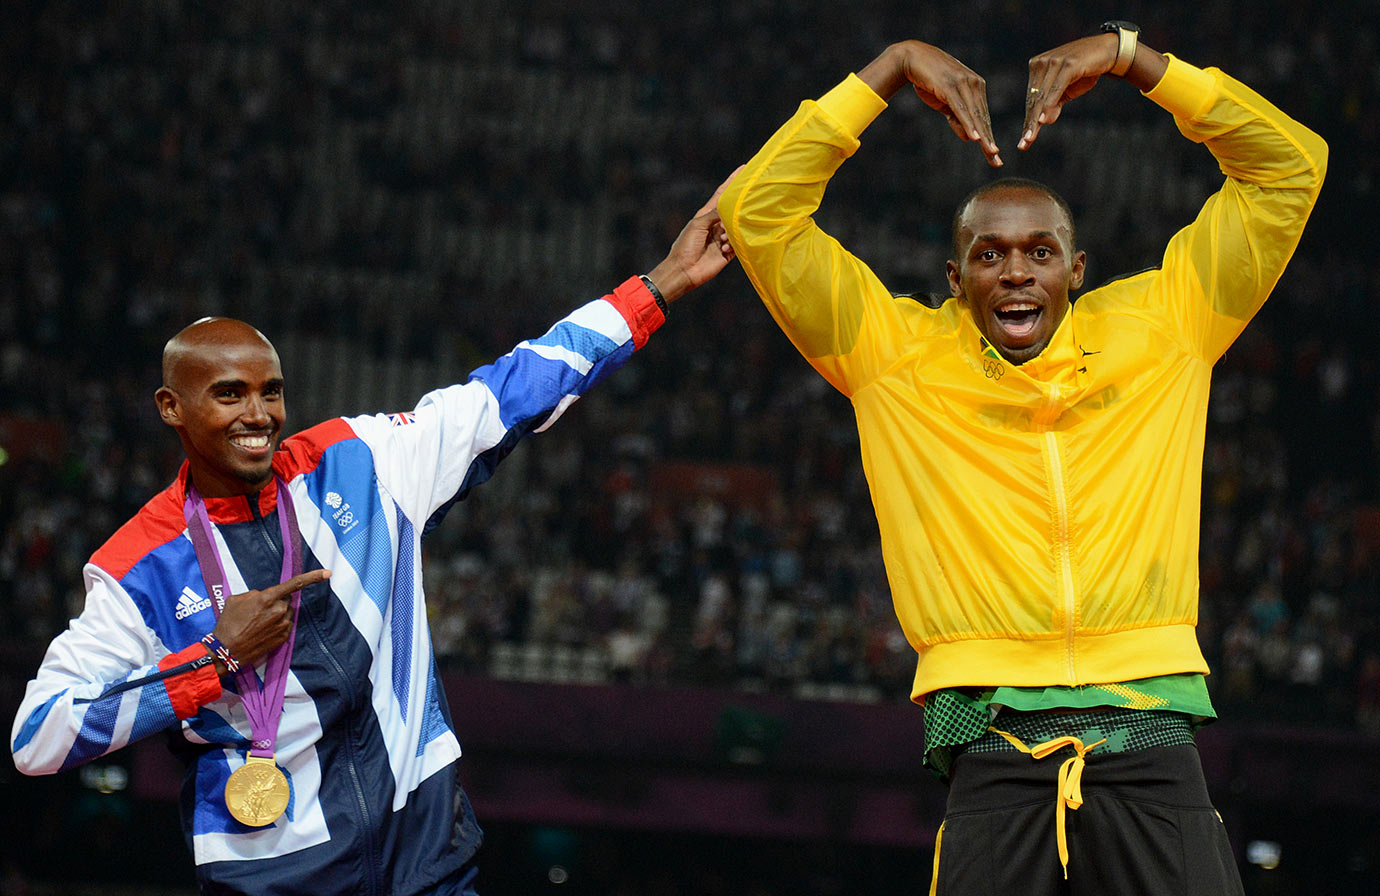 Usain Bolt has fun with Great Britain's 5000-meter gold medalist Mohamed Farah during the 2012 London Olympic Games.